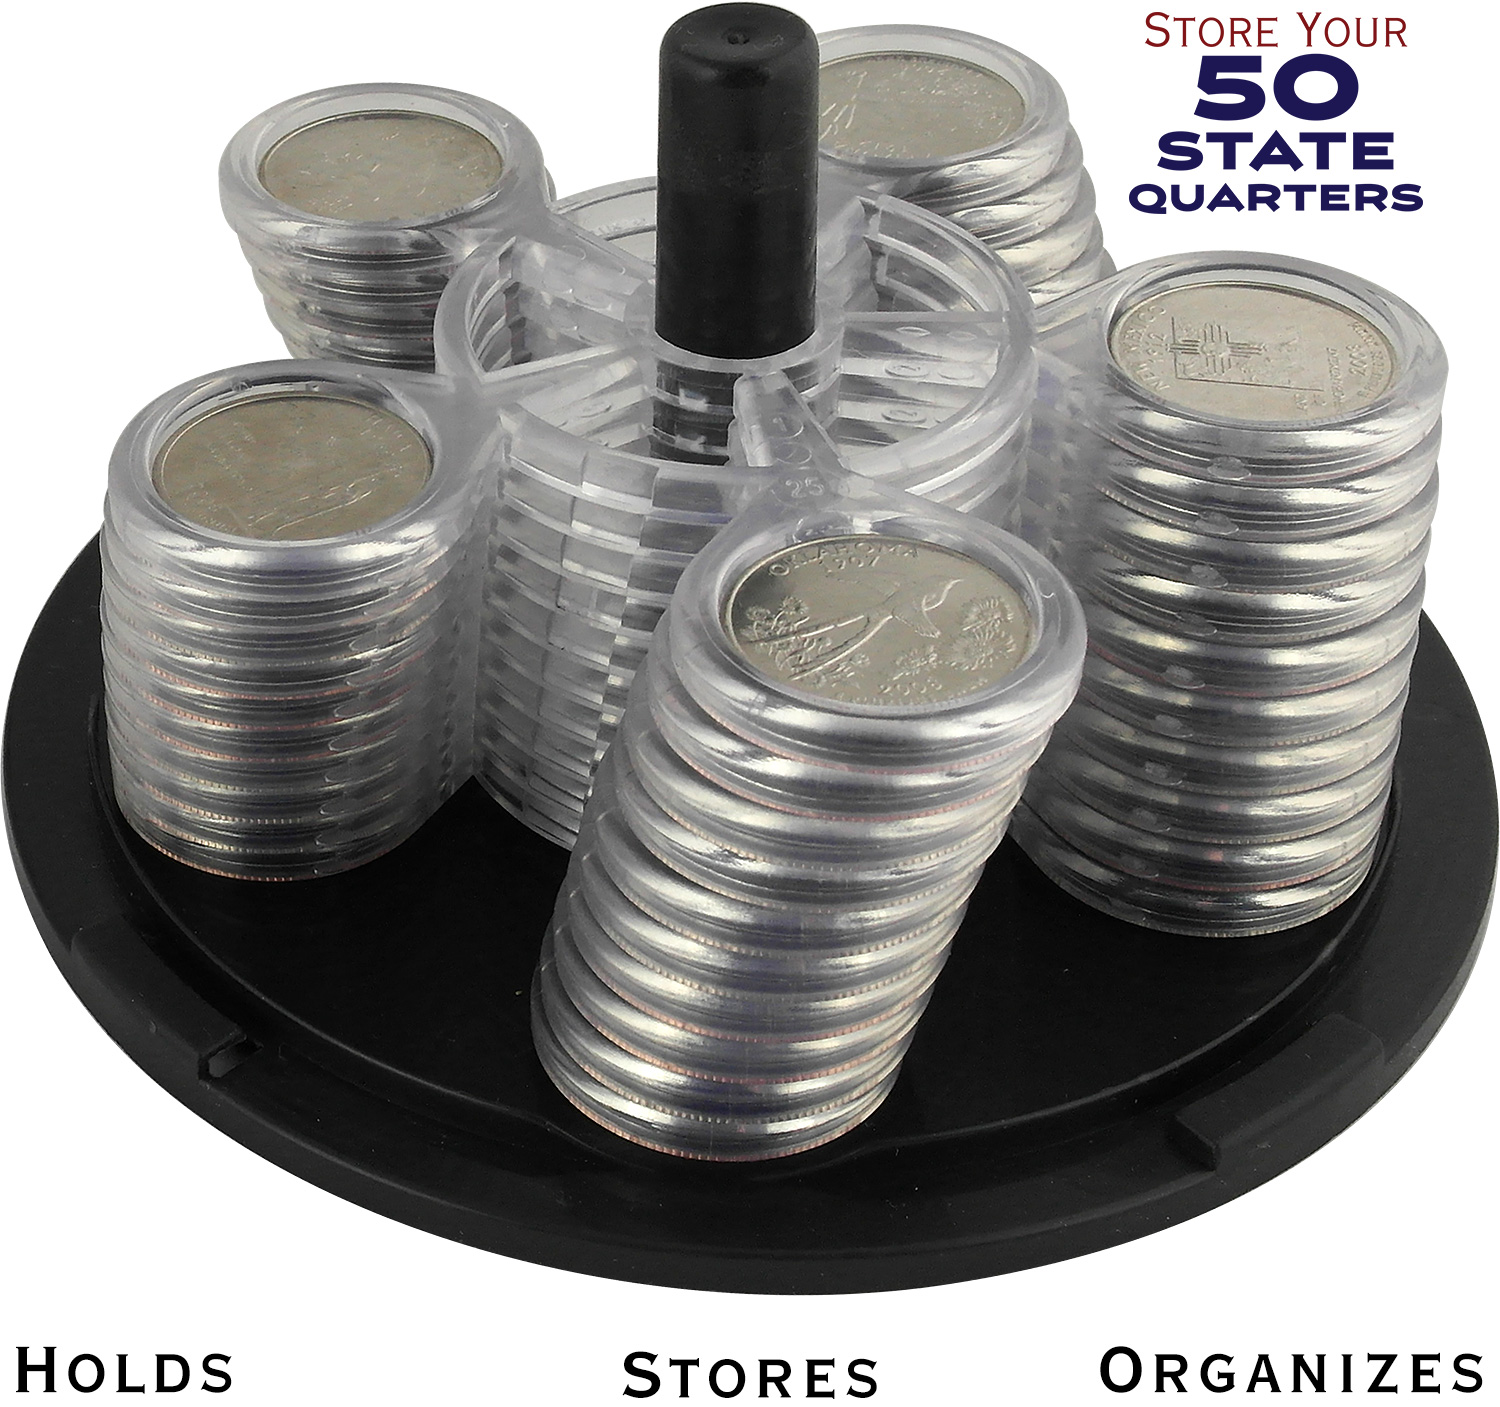 Coin Carousel™ Collection System